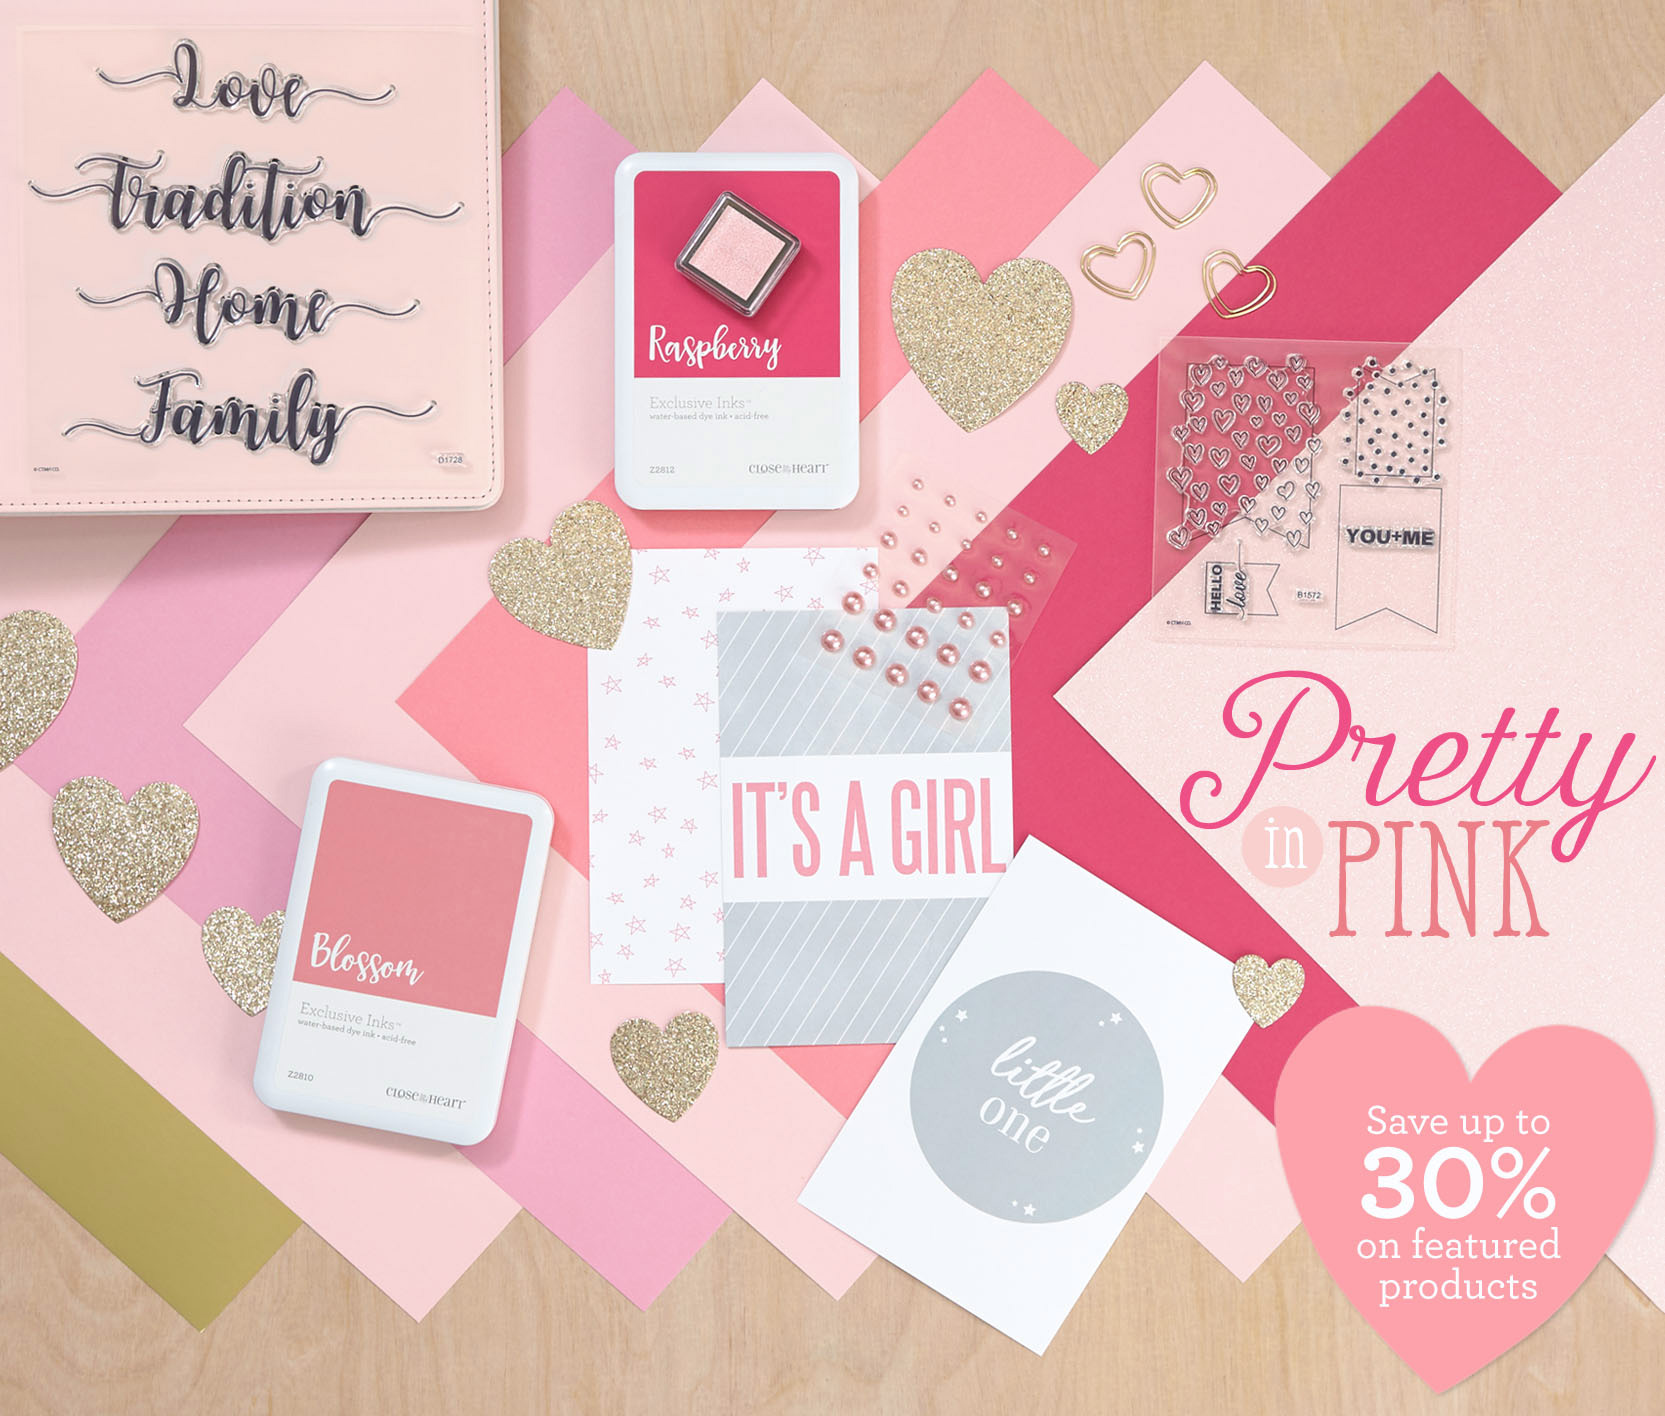 CTMH February Special -- Prretty in Pink